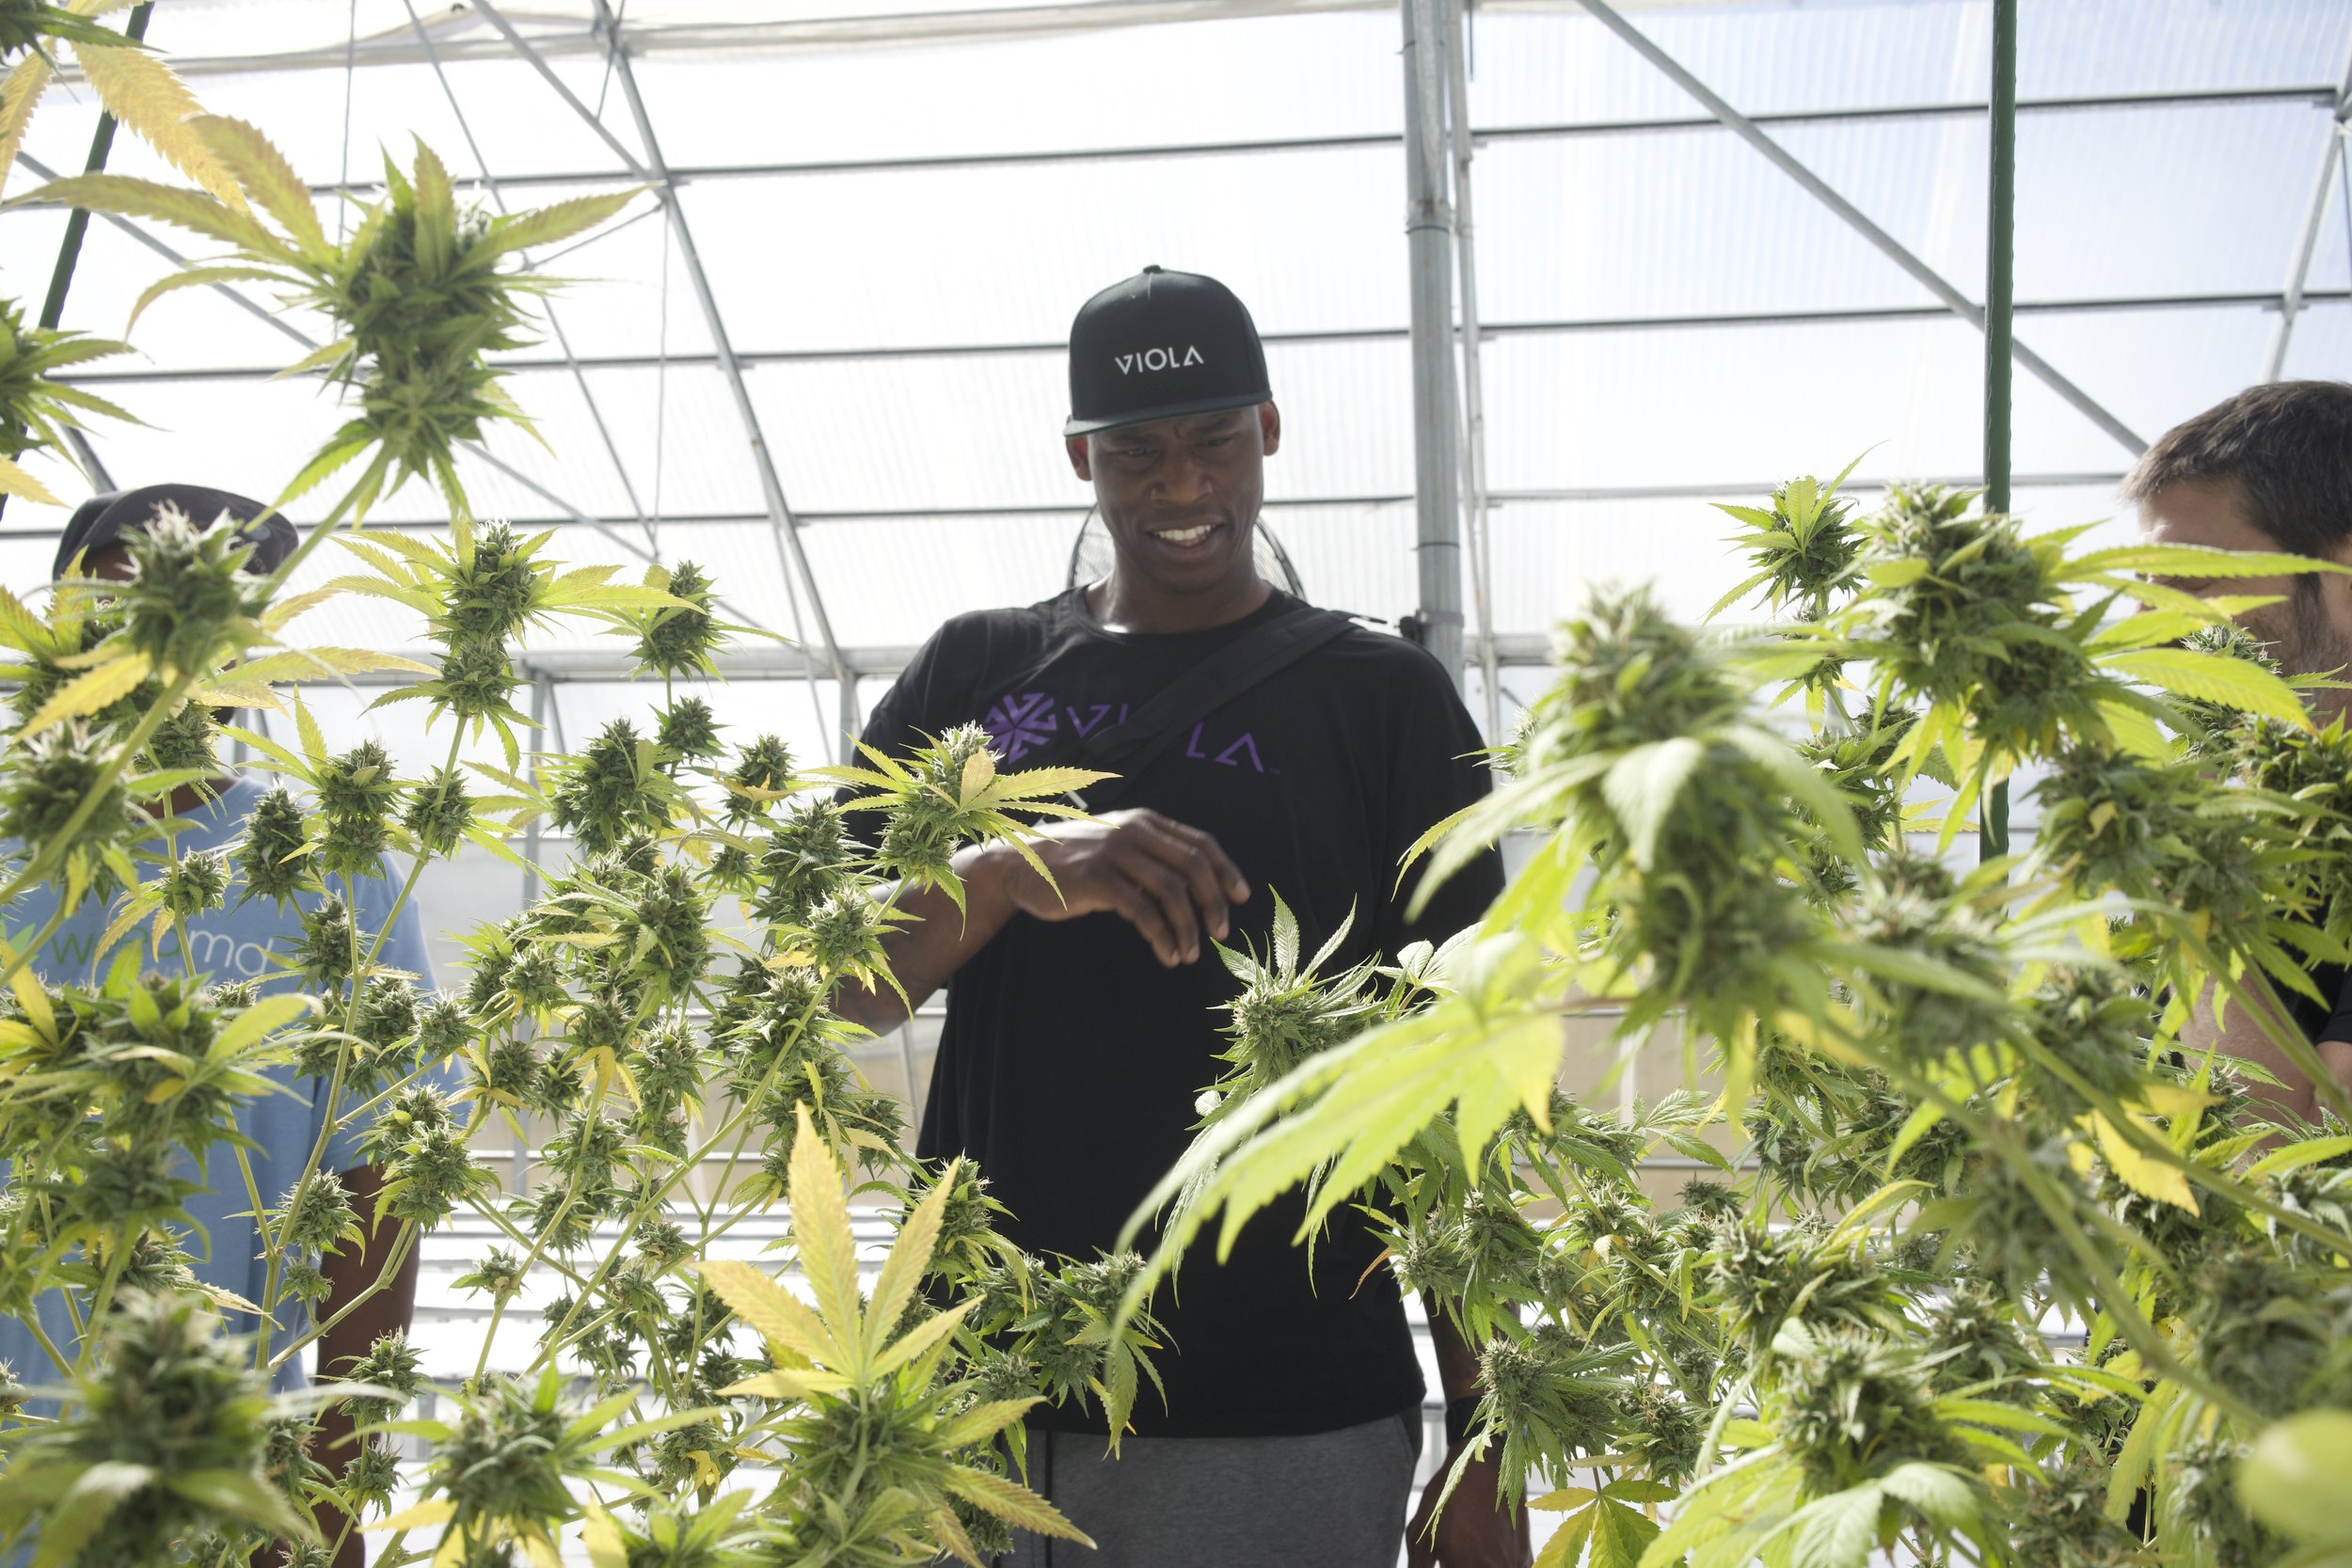 Former NBA Star Al Harrington started his own cannabis company called Viola.    Guess which Caribbean company he decided to partner with.